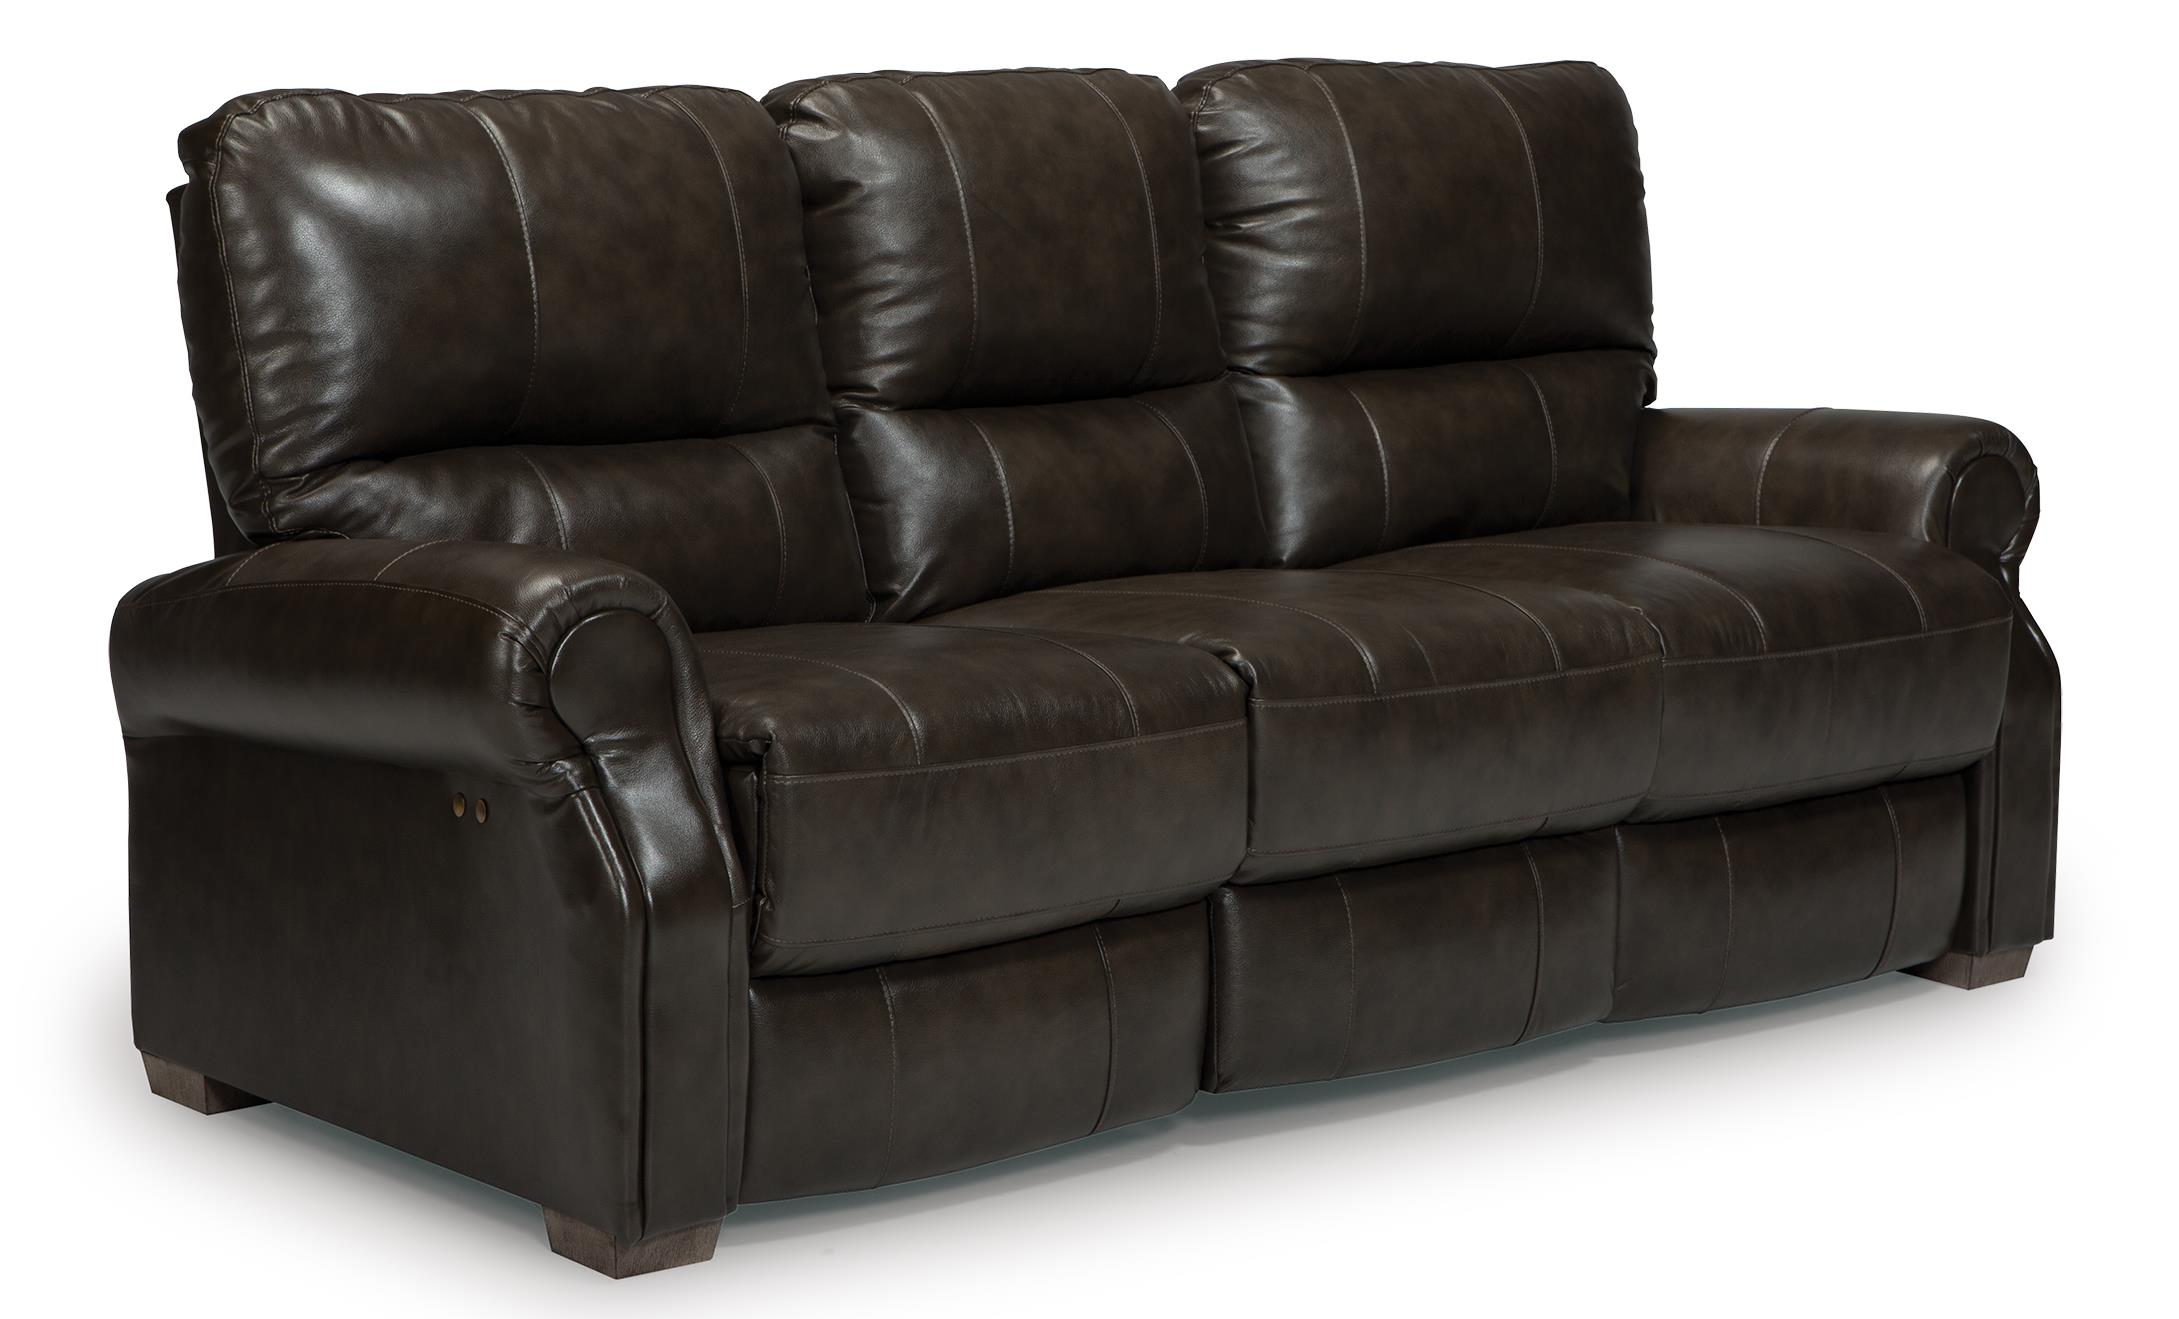 Best Home Furnishings Damien Power Reclining Sofa - Item Number: S910CP2-73106LV